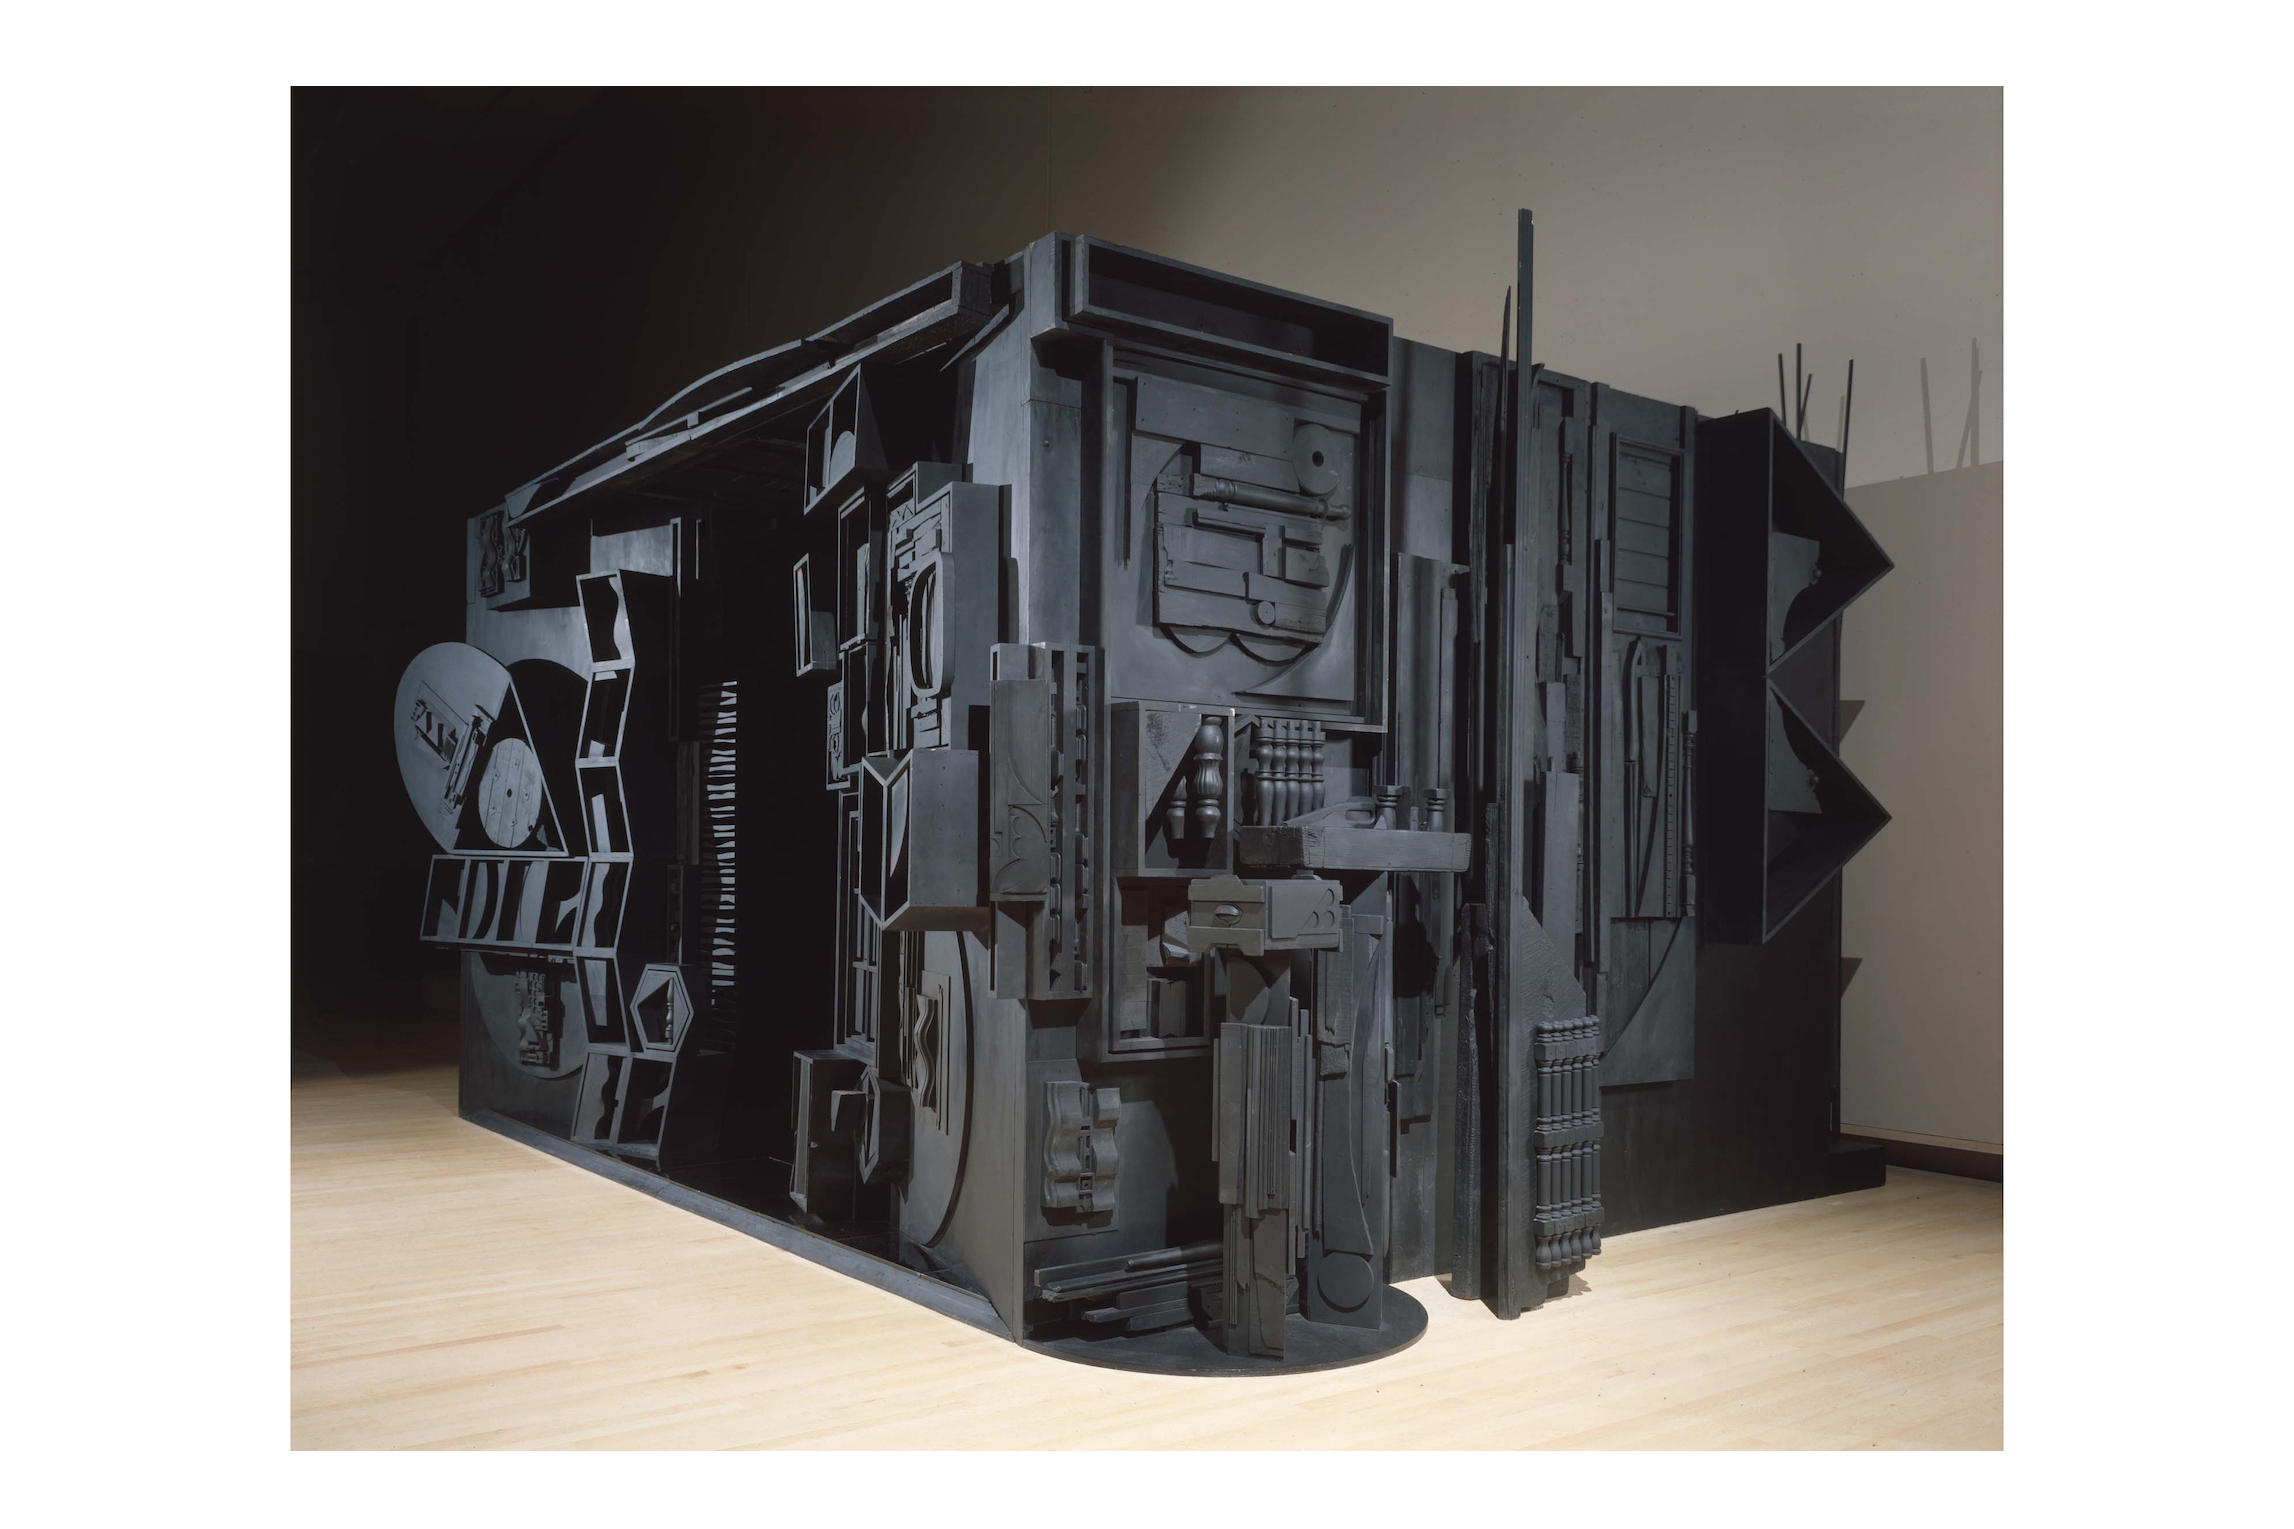 Louise Nevelson, Mrs. N's Palace, 1964-77